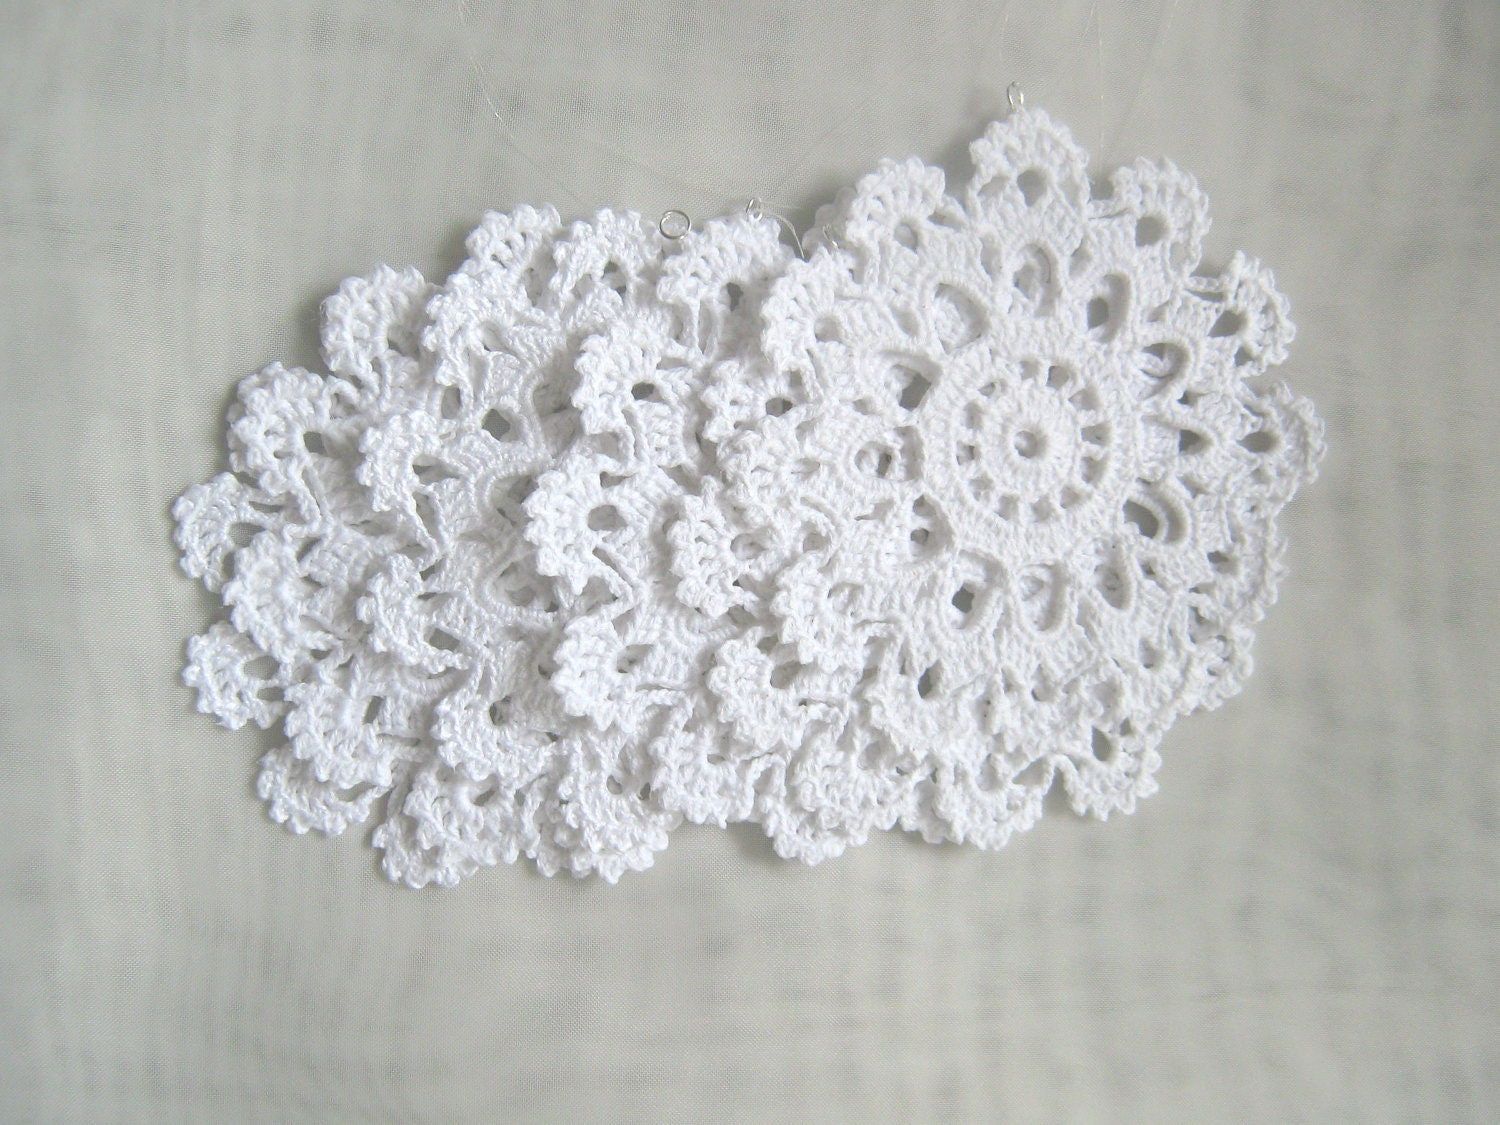 Christmas Decor - Crochet snowflakes -Set of 6 Lacy Snowflakes /Set of 6 Crochet coasters/Tea / Coffee coasters, Kitchen table decor